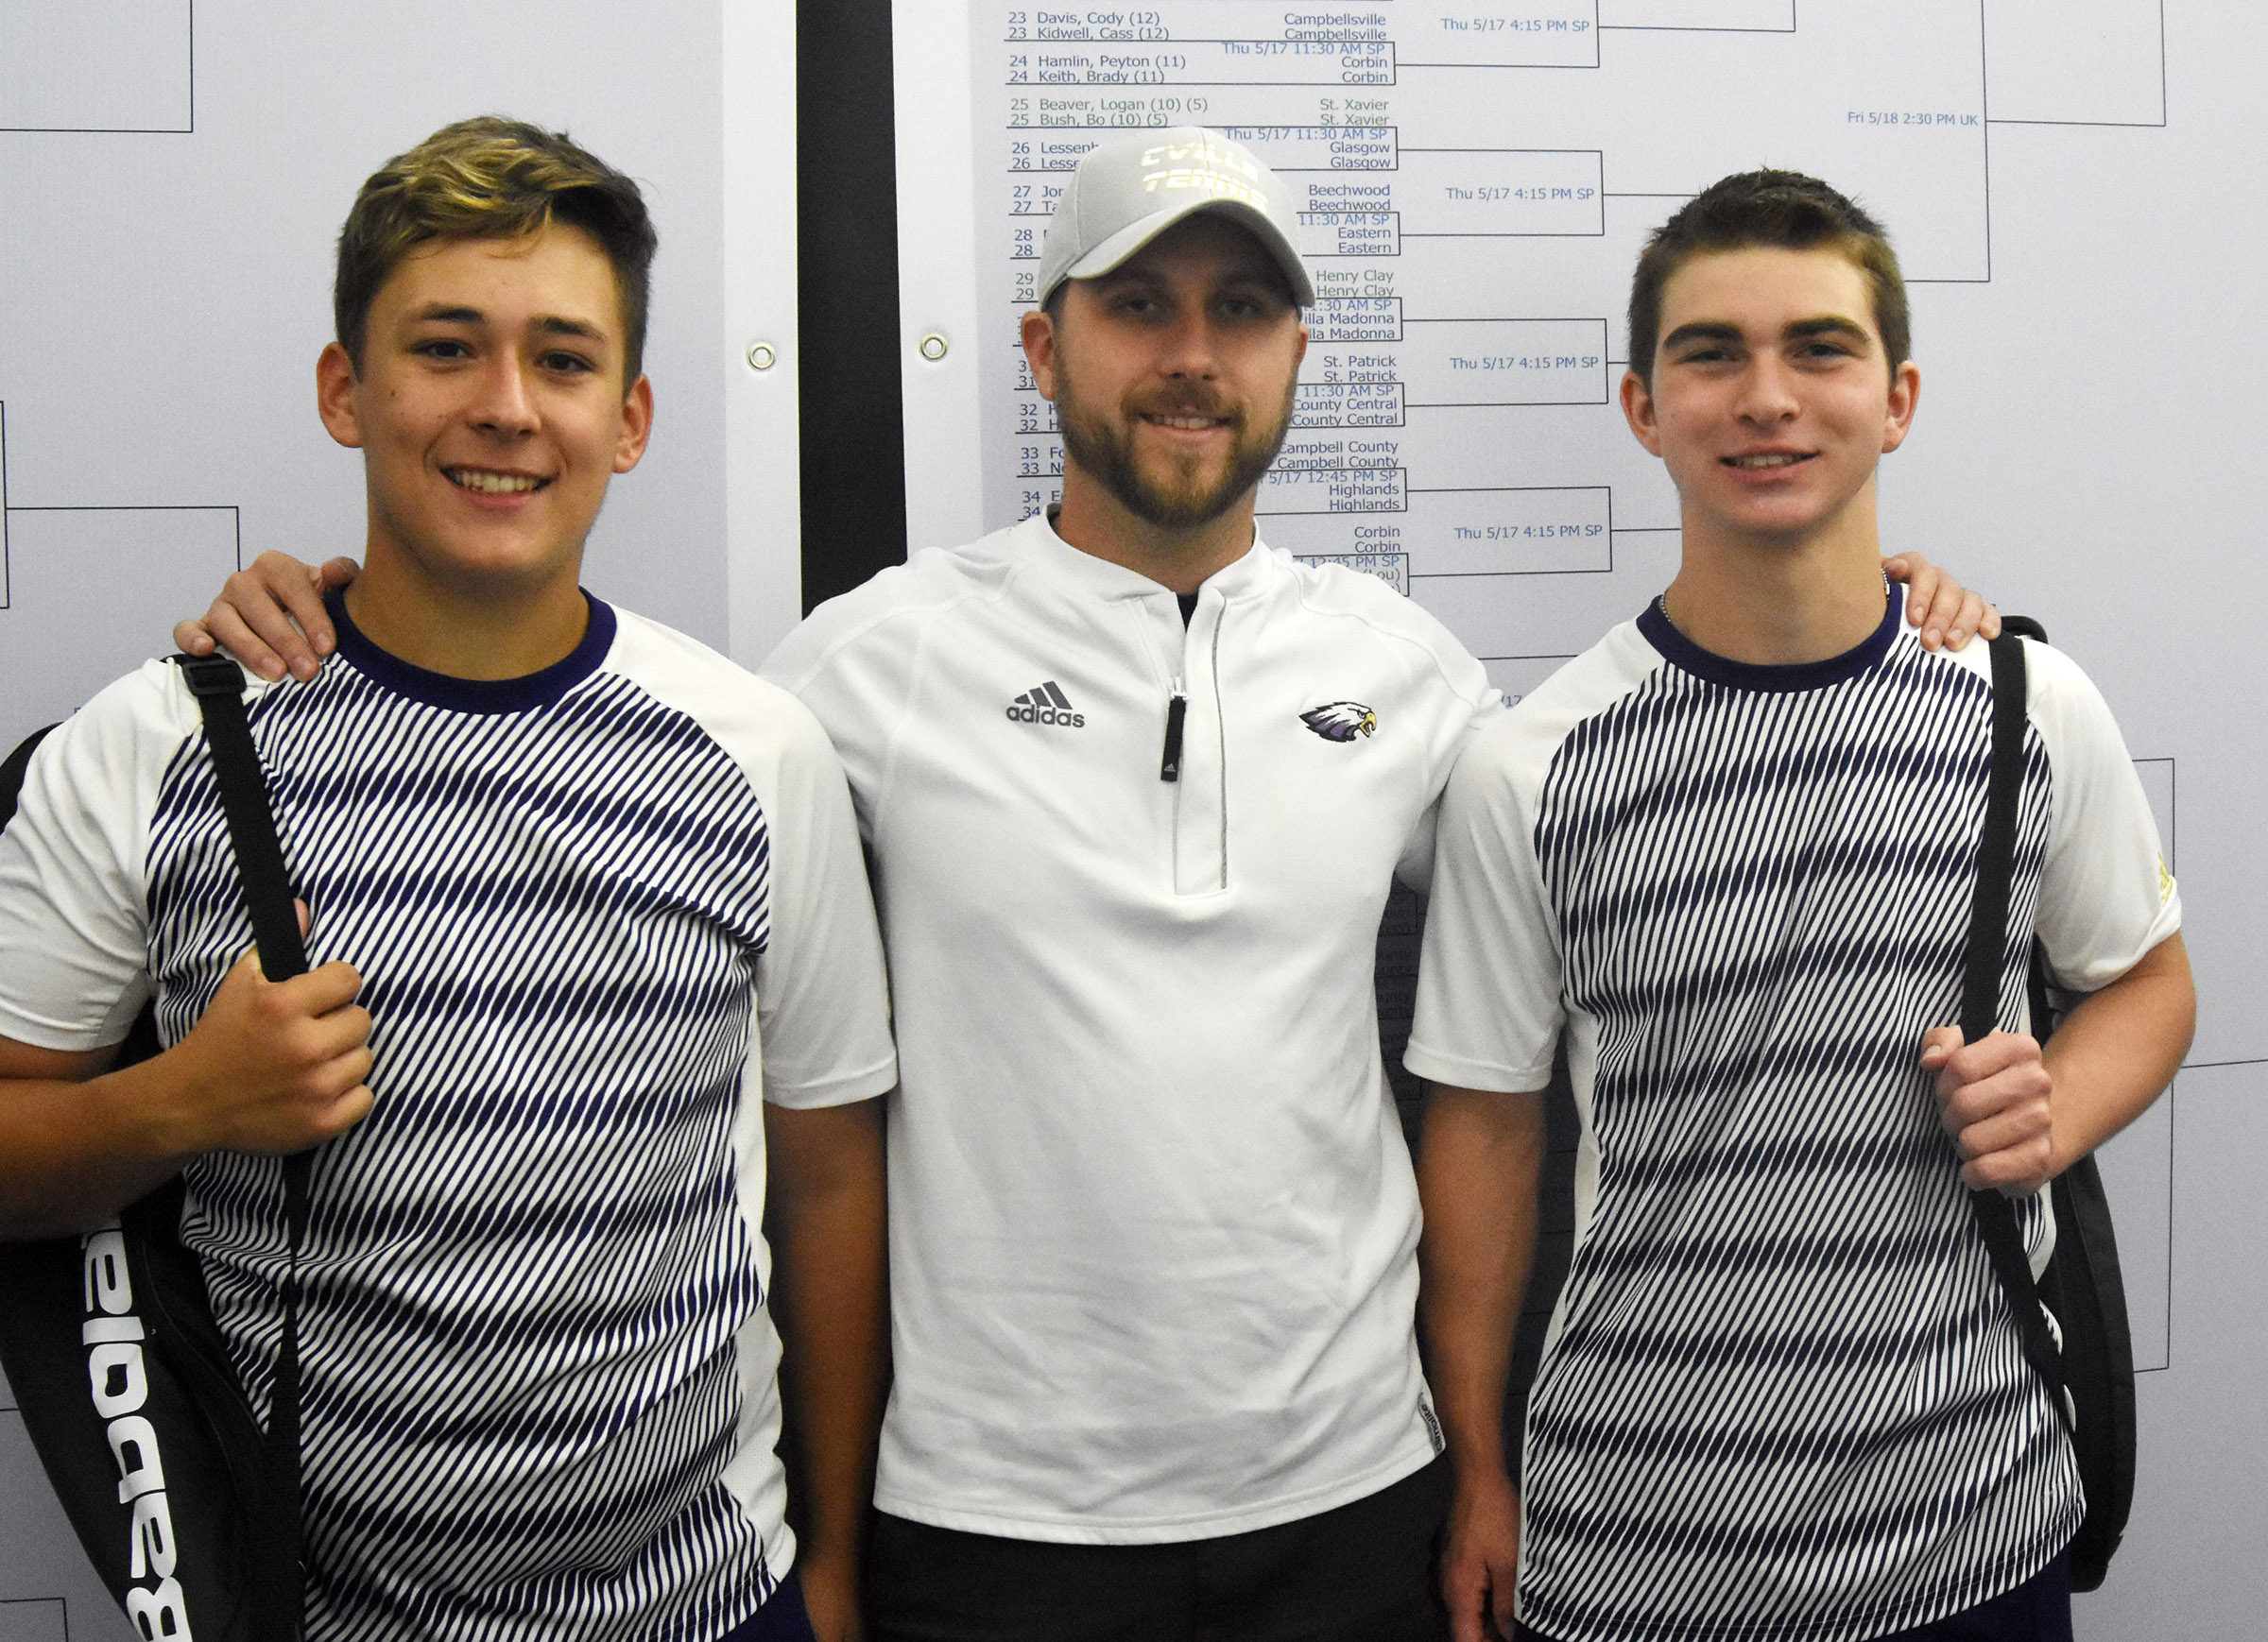 Campbellsville High School seniors Cody Davis, at left, and Cass Kidwell, at right, made school history recently, playing in the state tennis tournament on Thursday, May 17. Davis and Kidwell are the first CHS boys' tennis players to compete at the state tournament since 2002. They are pictured with boys' tennis coach Tyler Hardy.